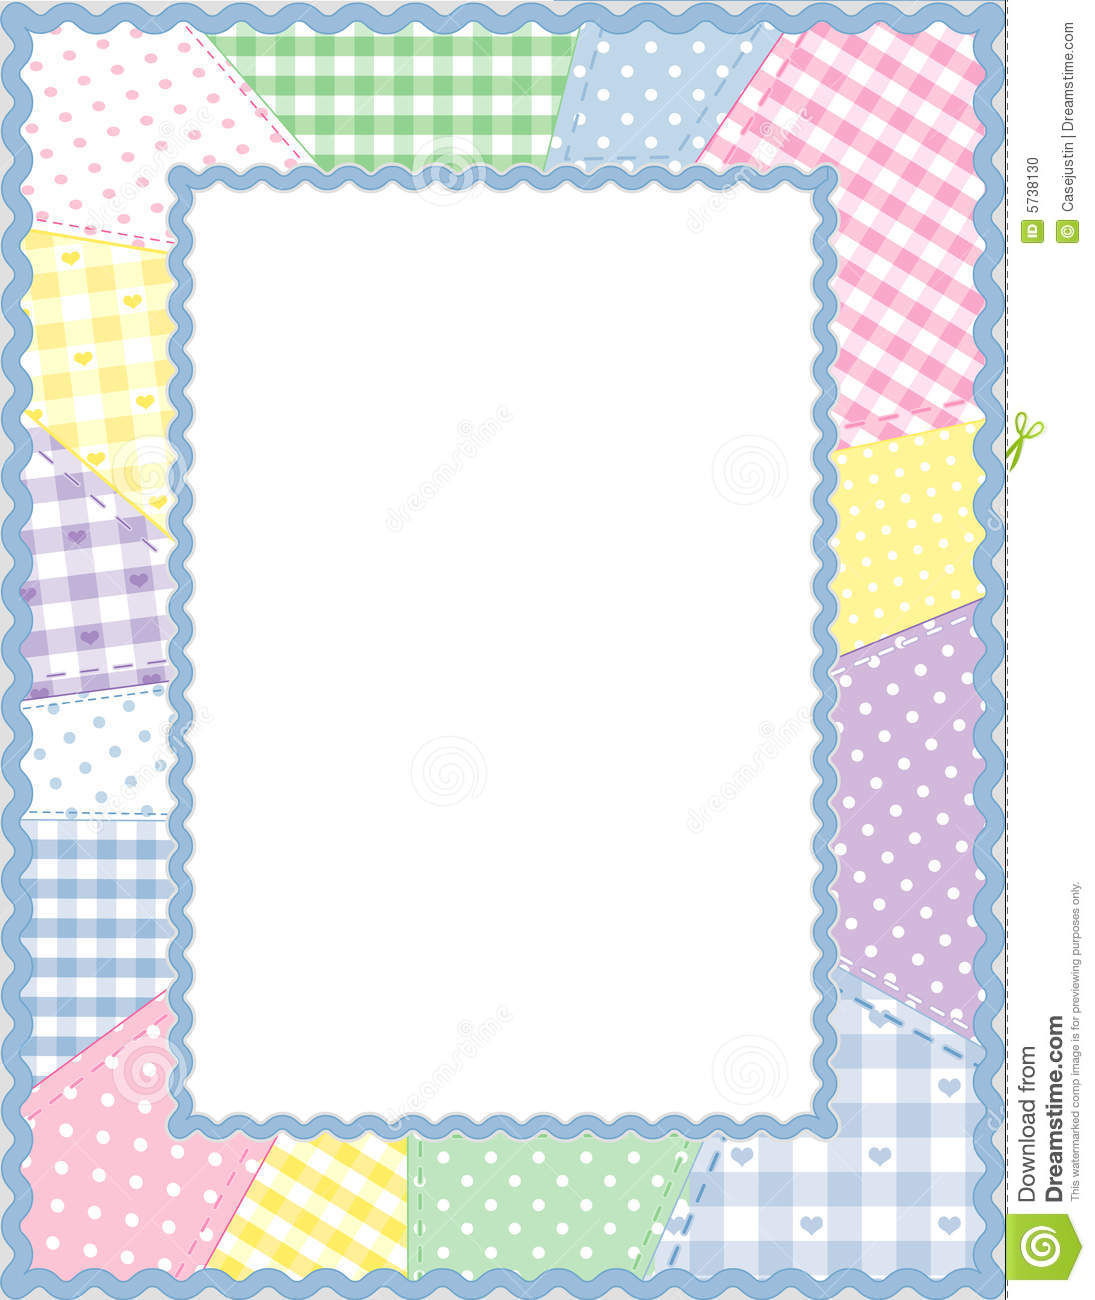 Patchwork Frame Pastels Stock Photo Image 5738130